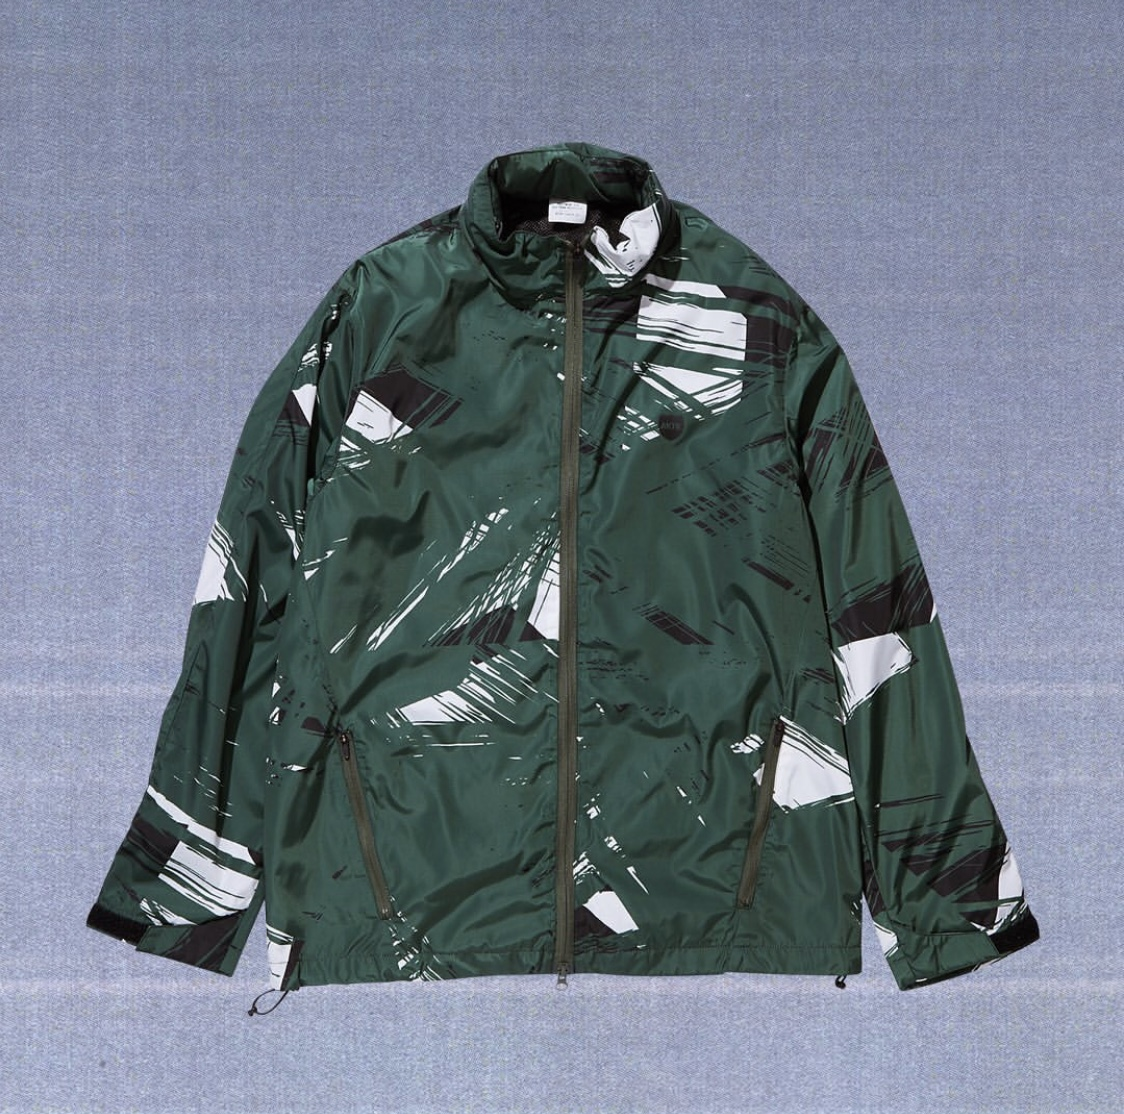 AKTR NEON SWAY JACKET GREENのイメージ